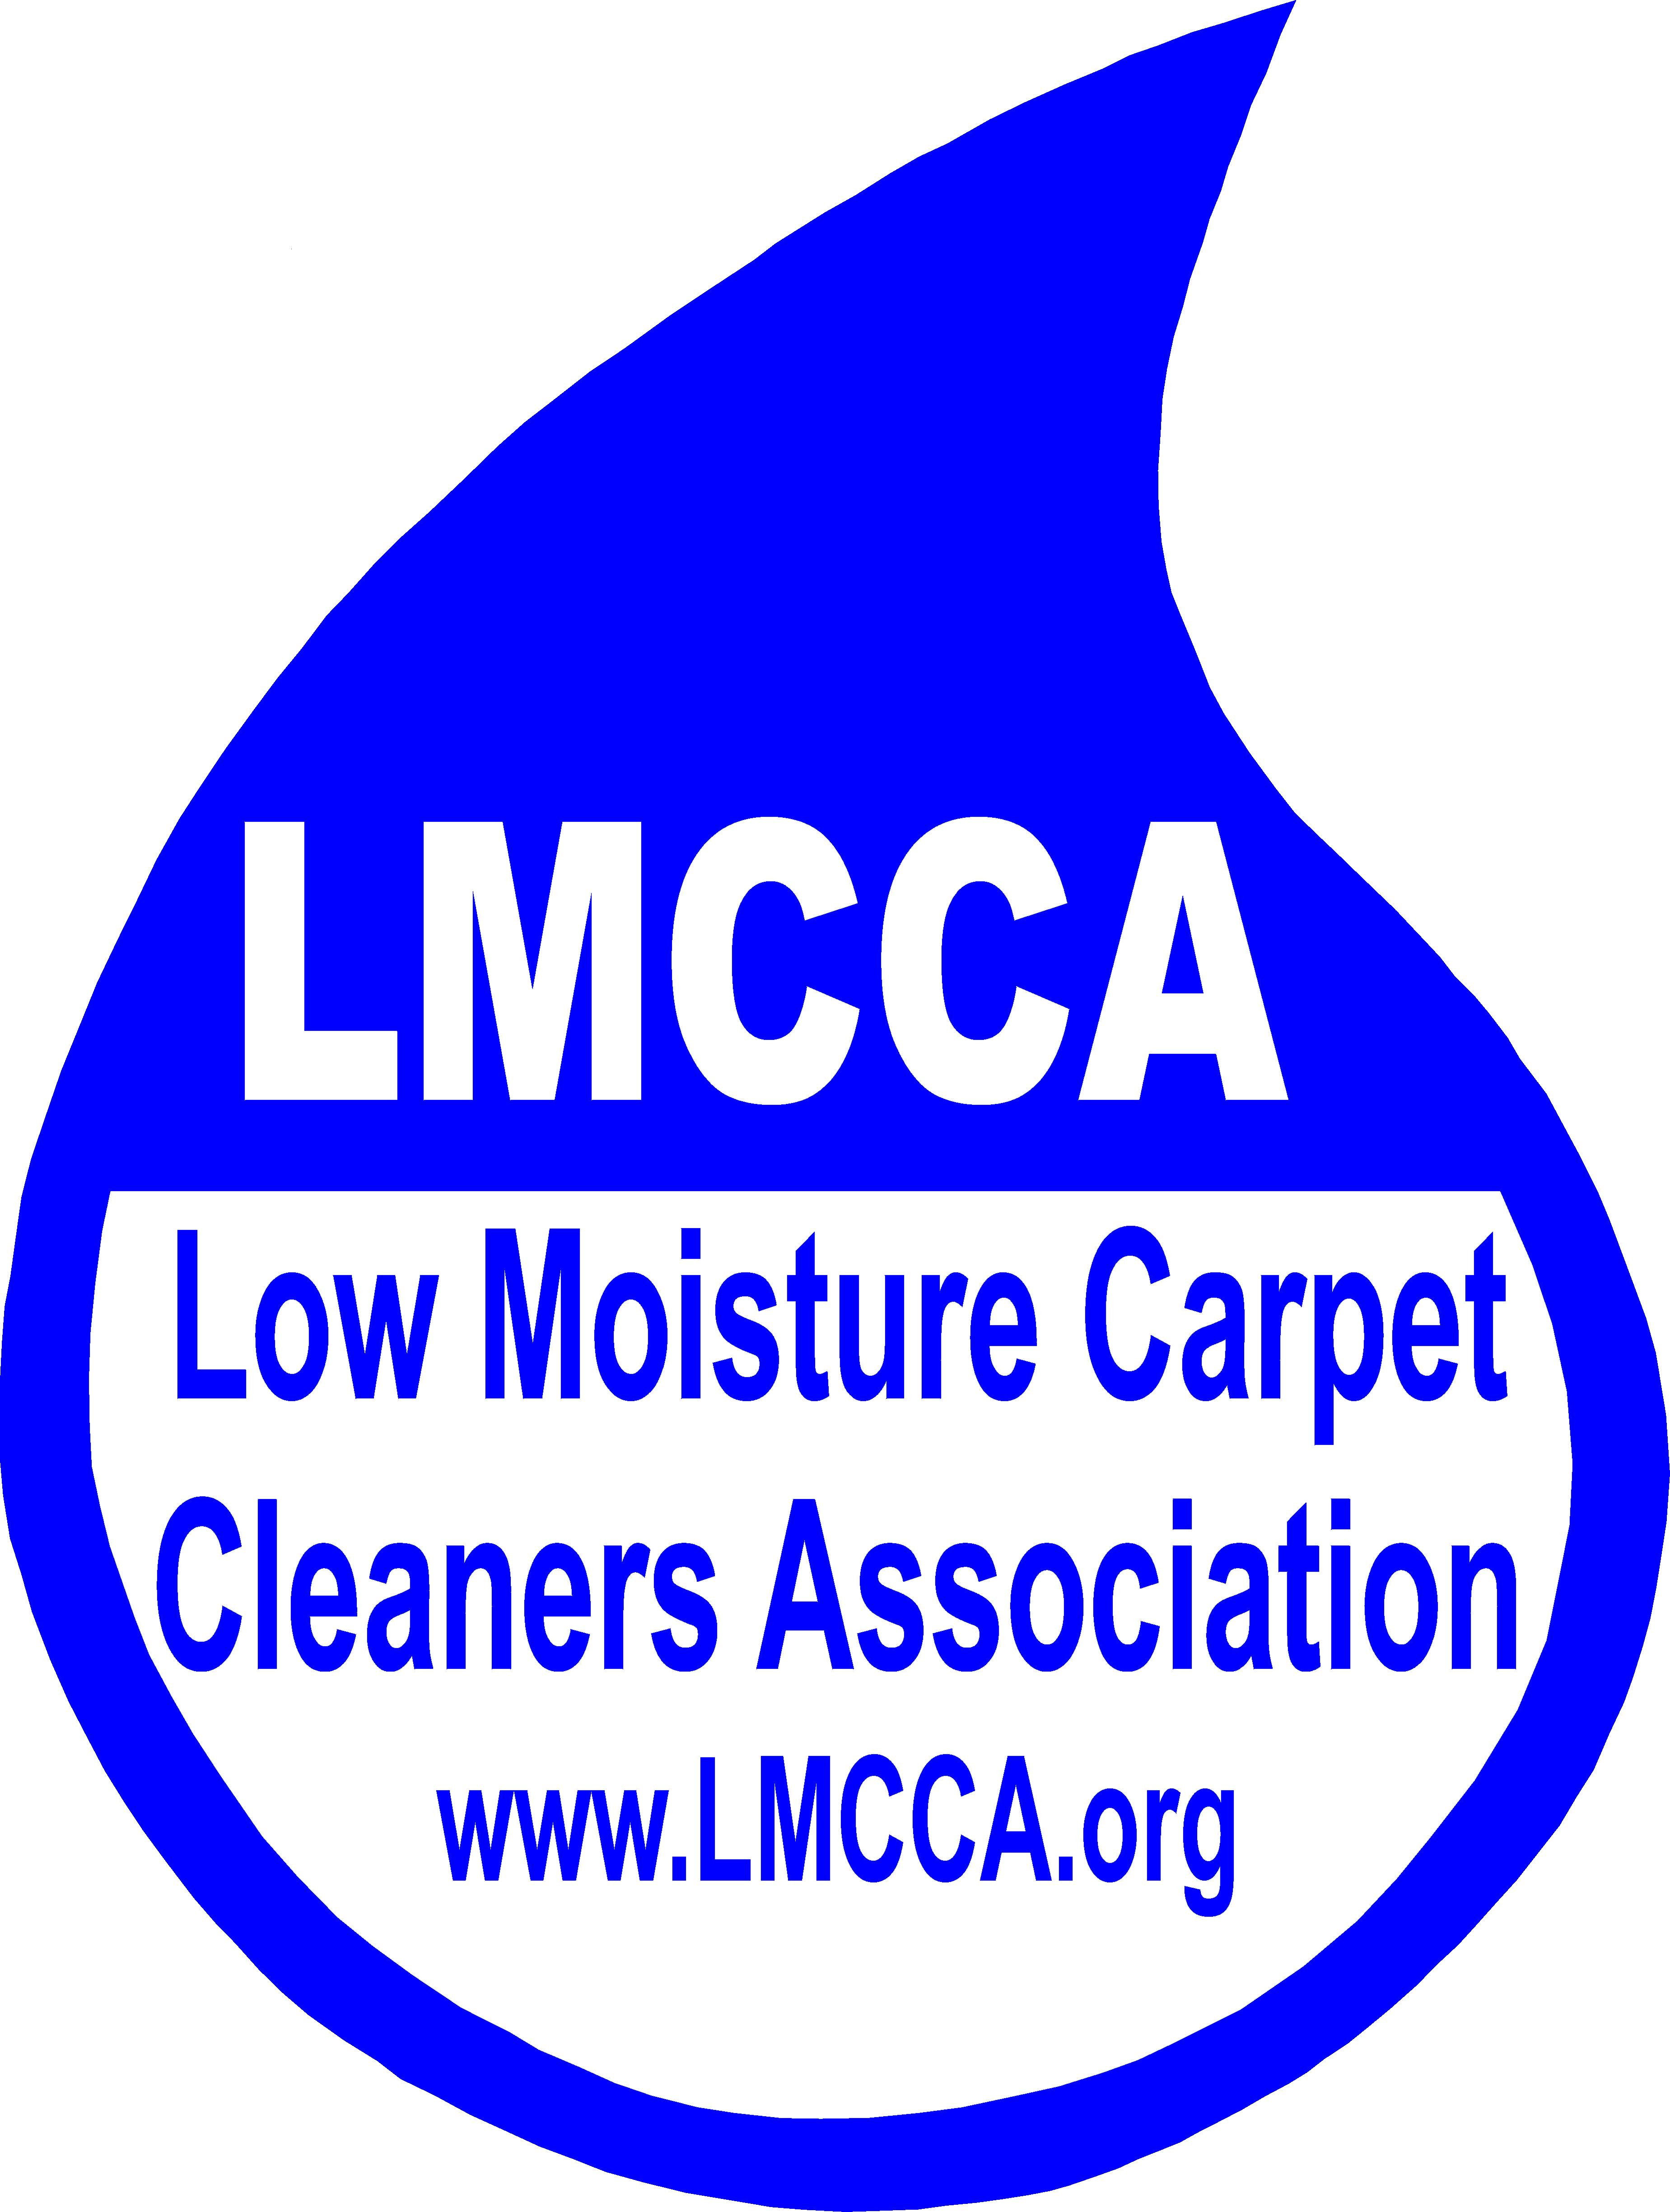 Low Moisture Carpet Cleaners Association